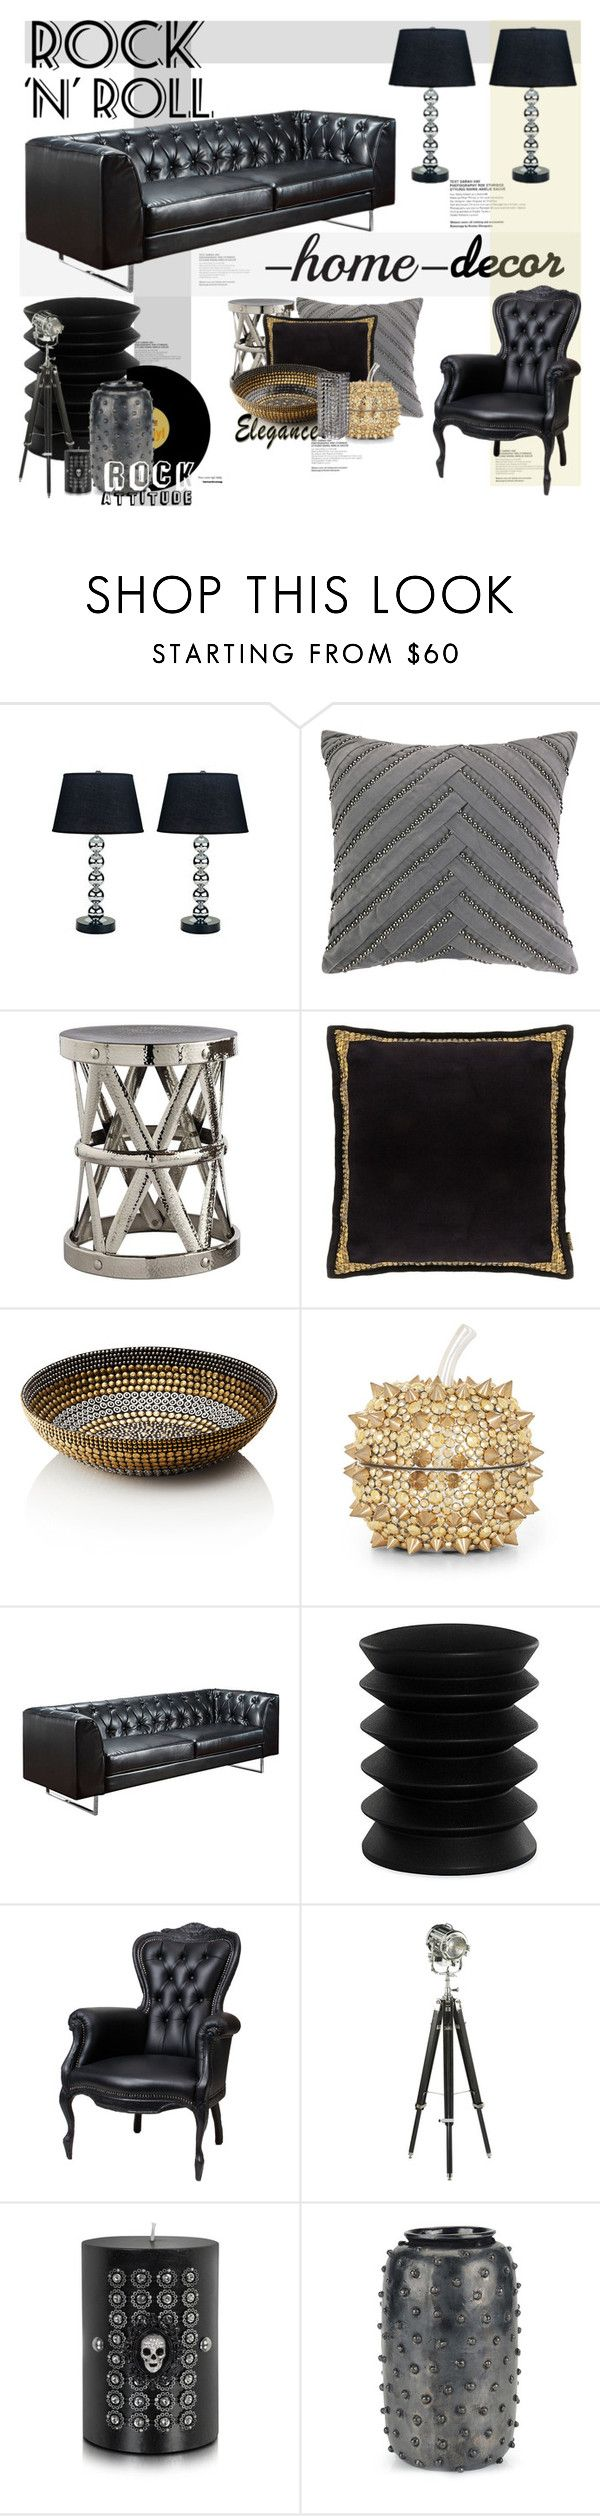 Rock n roll decor by maddycruise liked on polyvore featuring interior interiors interior - Rock n roll dekoration ...